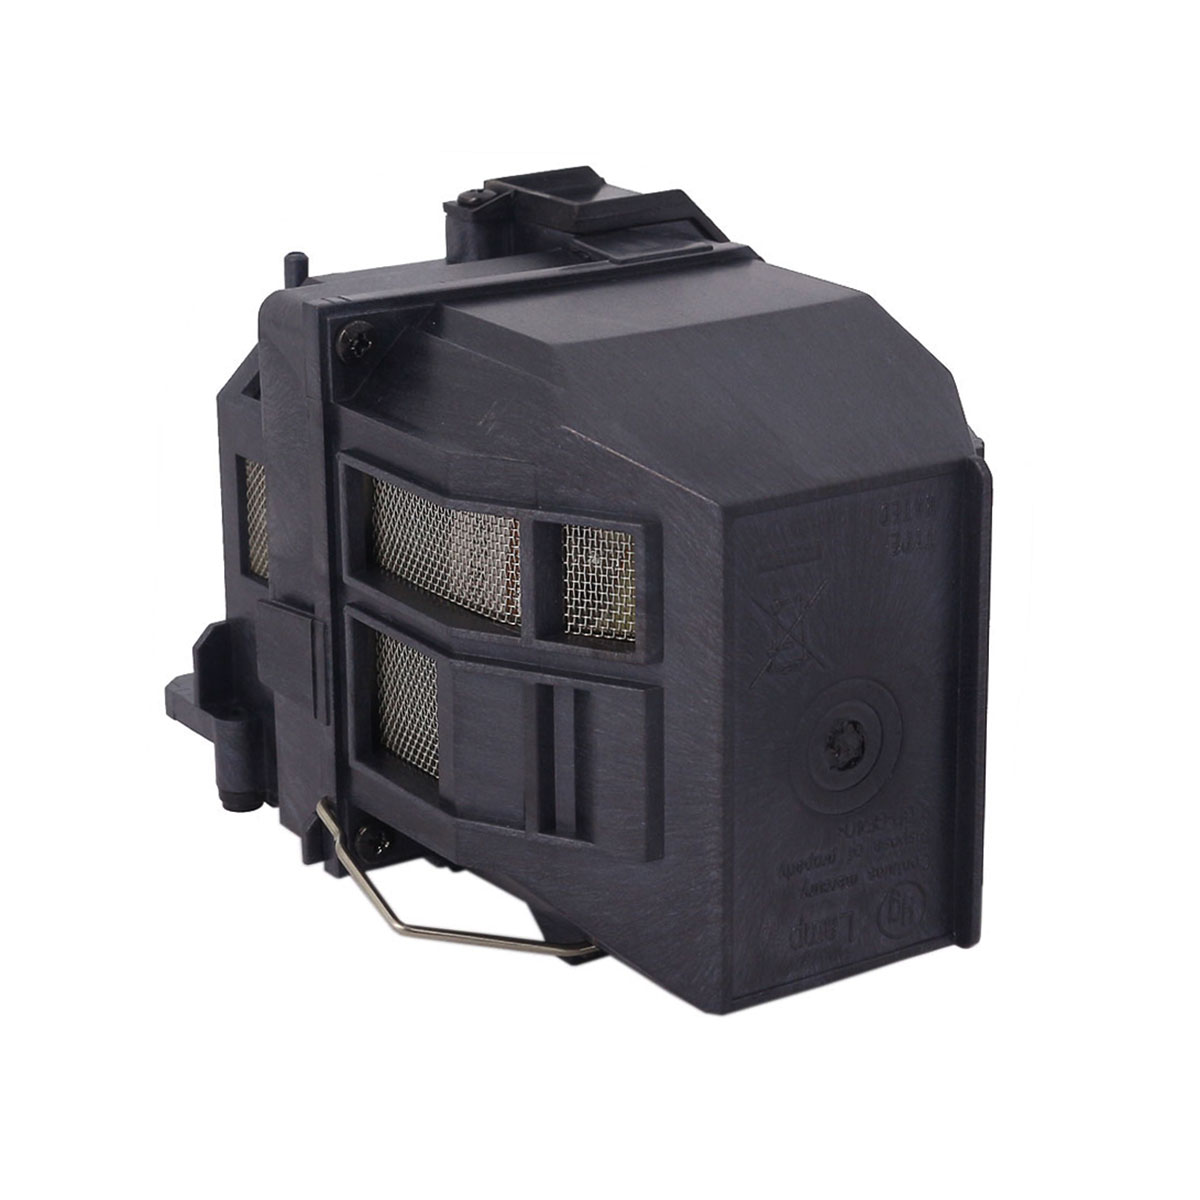 Lutema Platinum for Epson ELPLP91 Projector Lamp with Housing (Original Philips Bulb Inside) - image 3 of 5